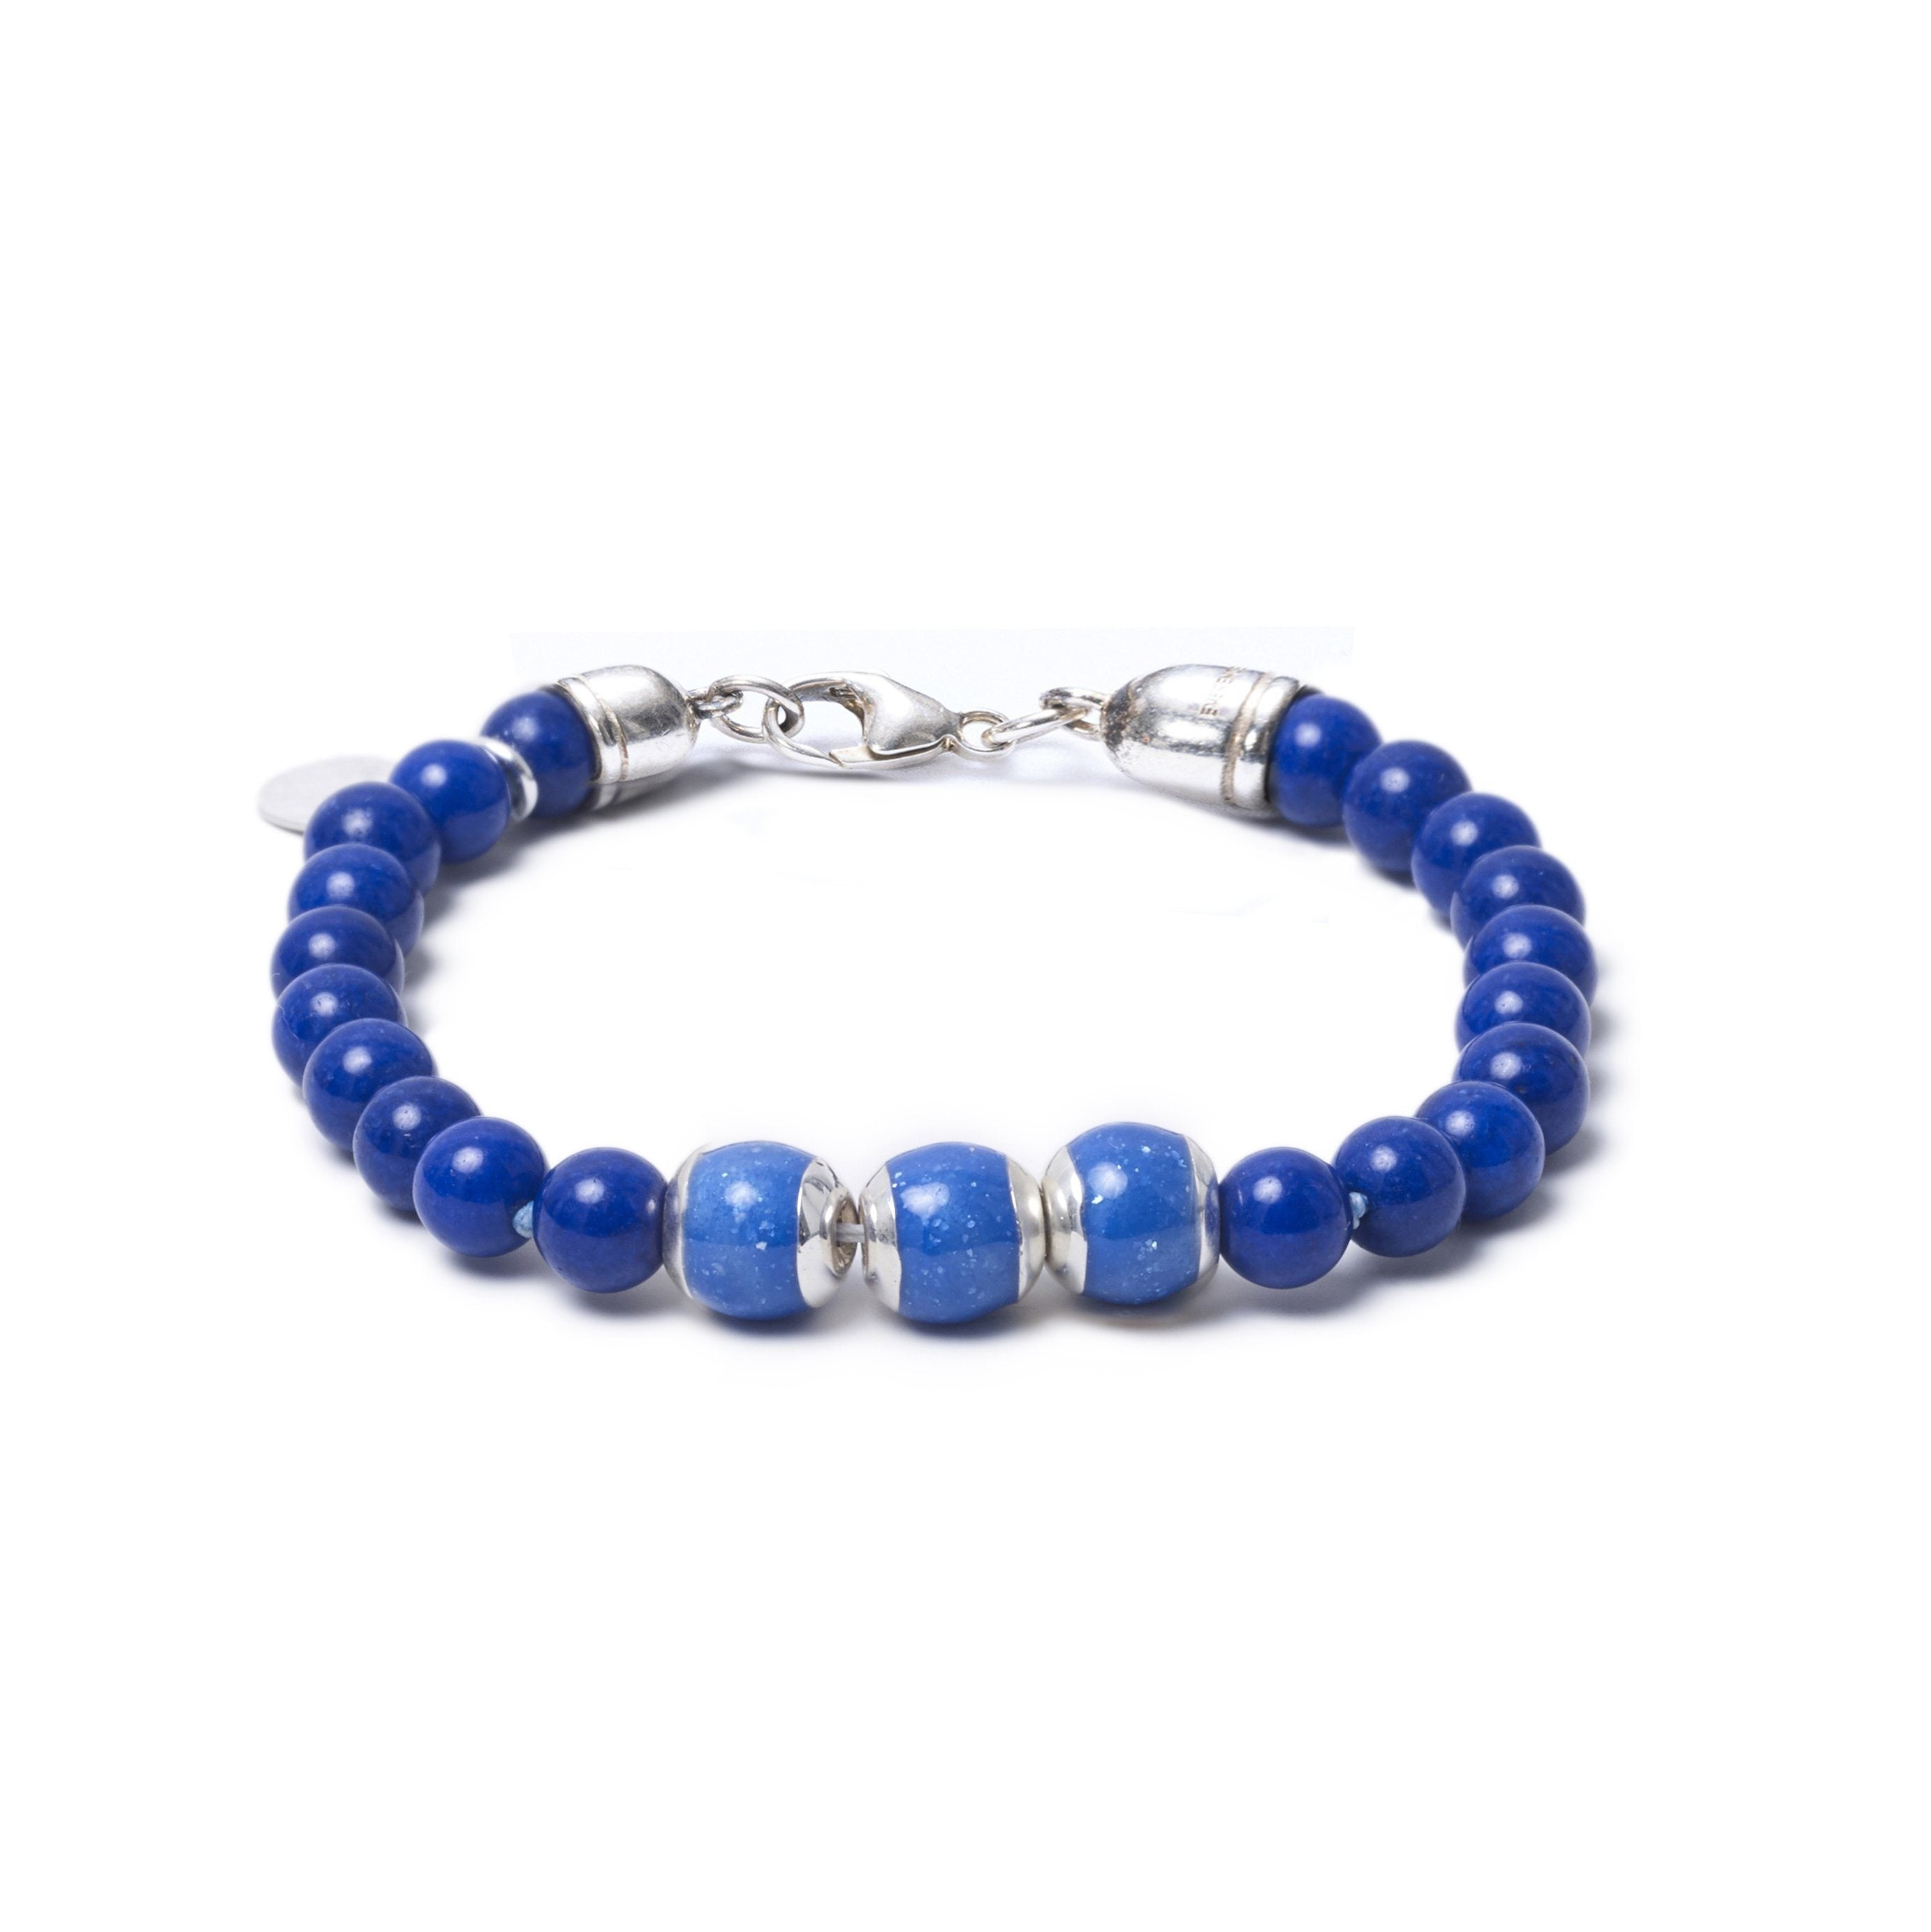 Lapis Lazuli, Three Everence Beads everence.life Blue Lobster Claw 7